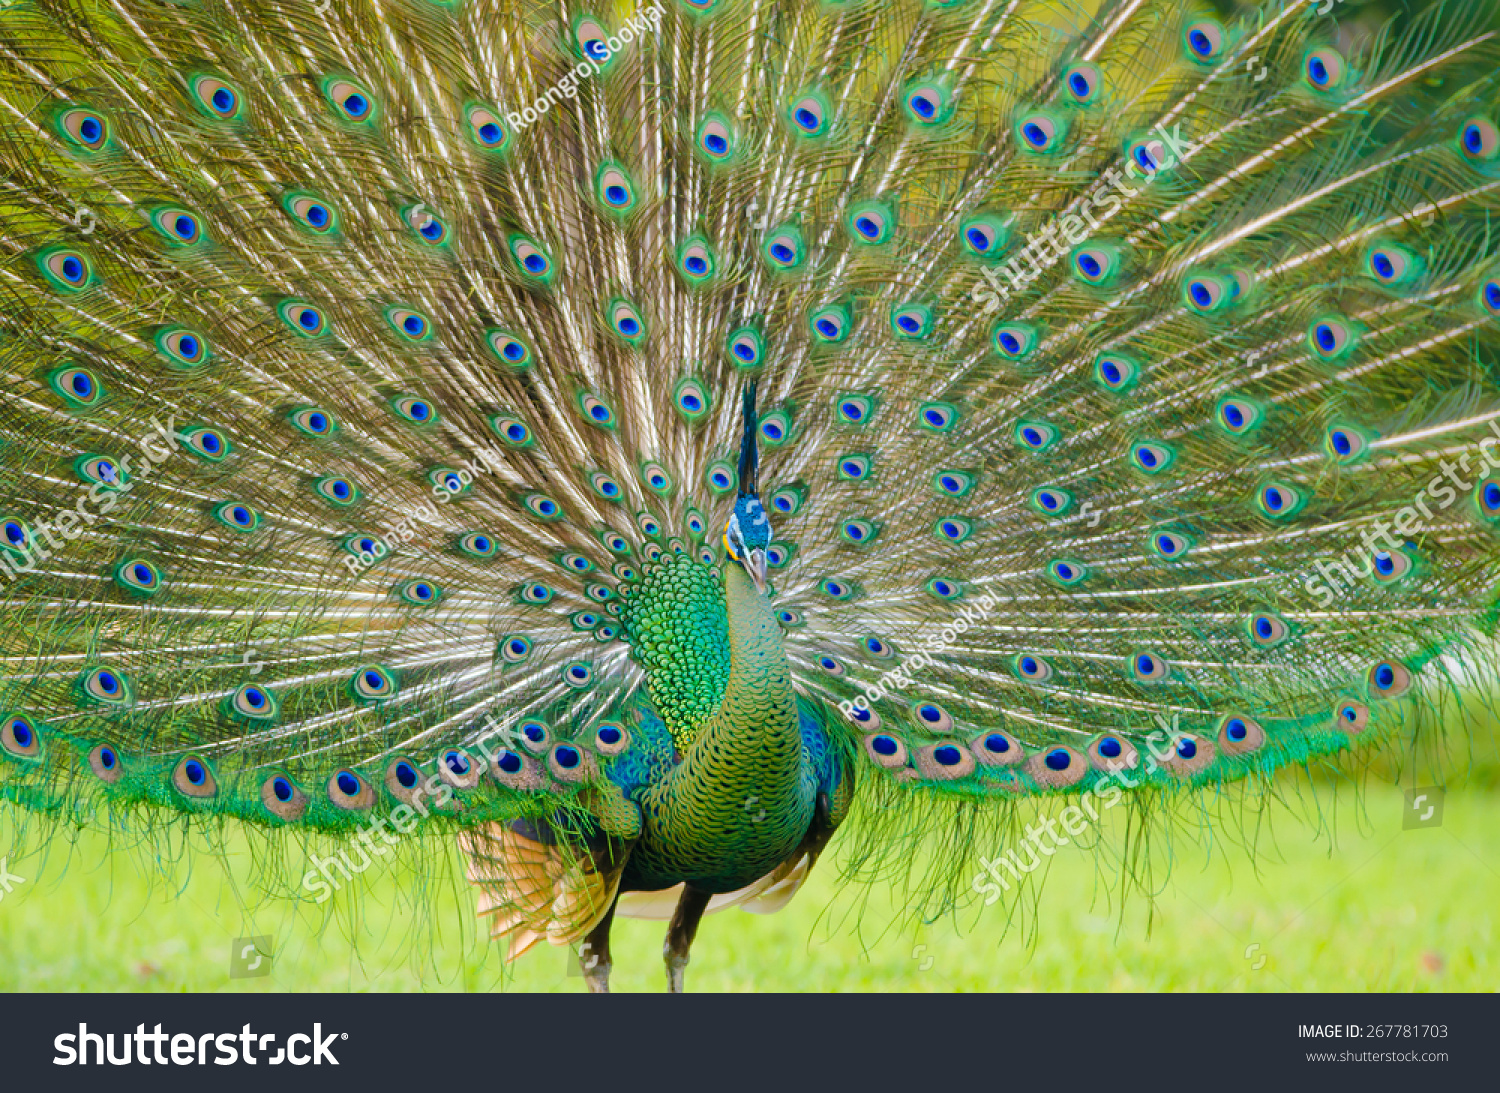 Portrait beautiful peacock feathers out stock photo 267781703 shutterstock - Beautiful peacock feather ...